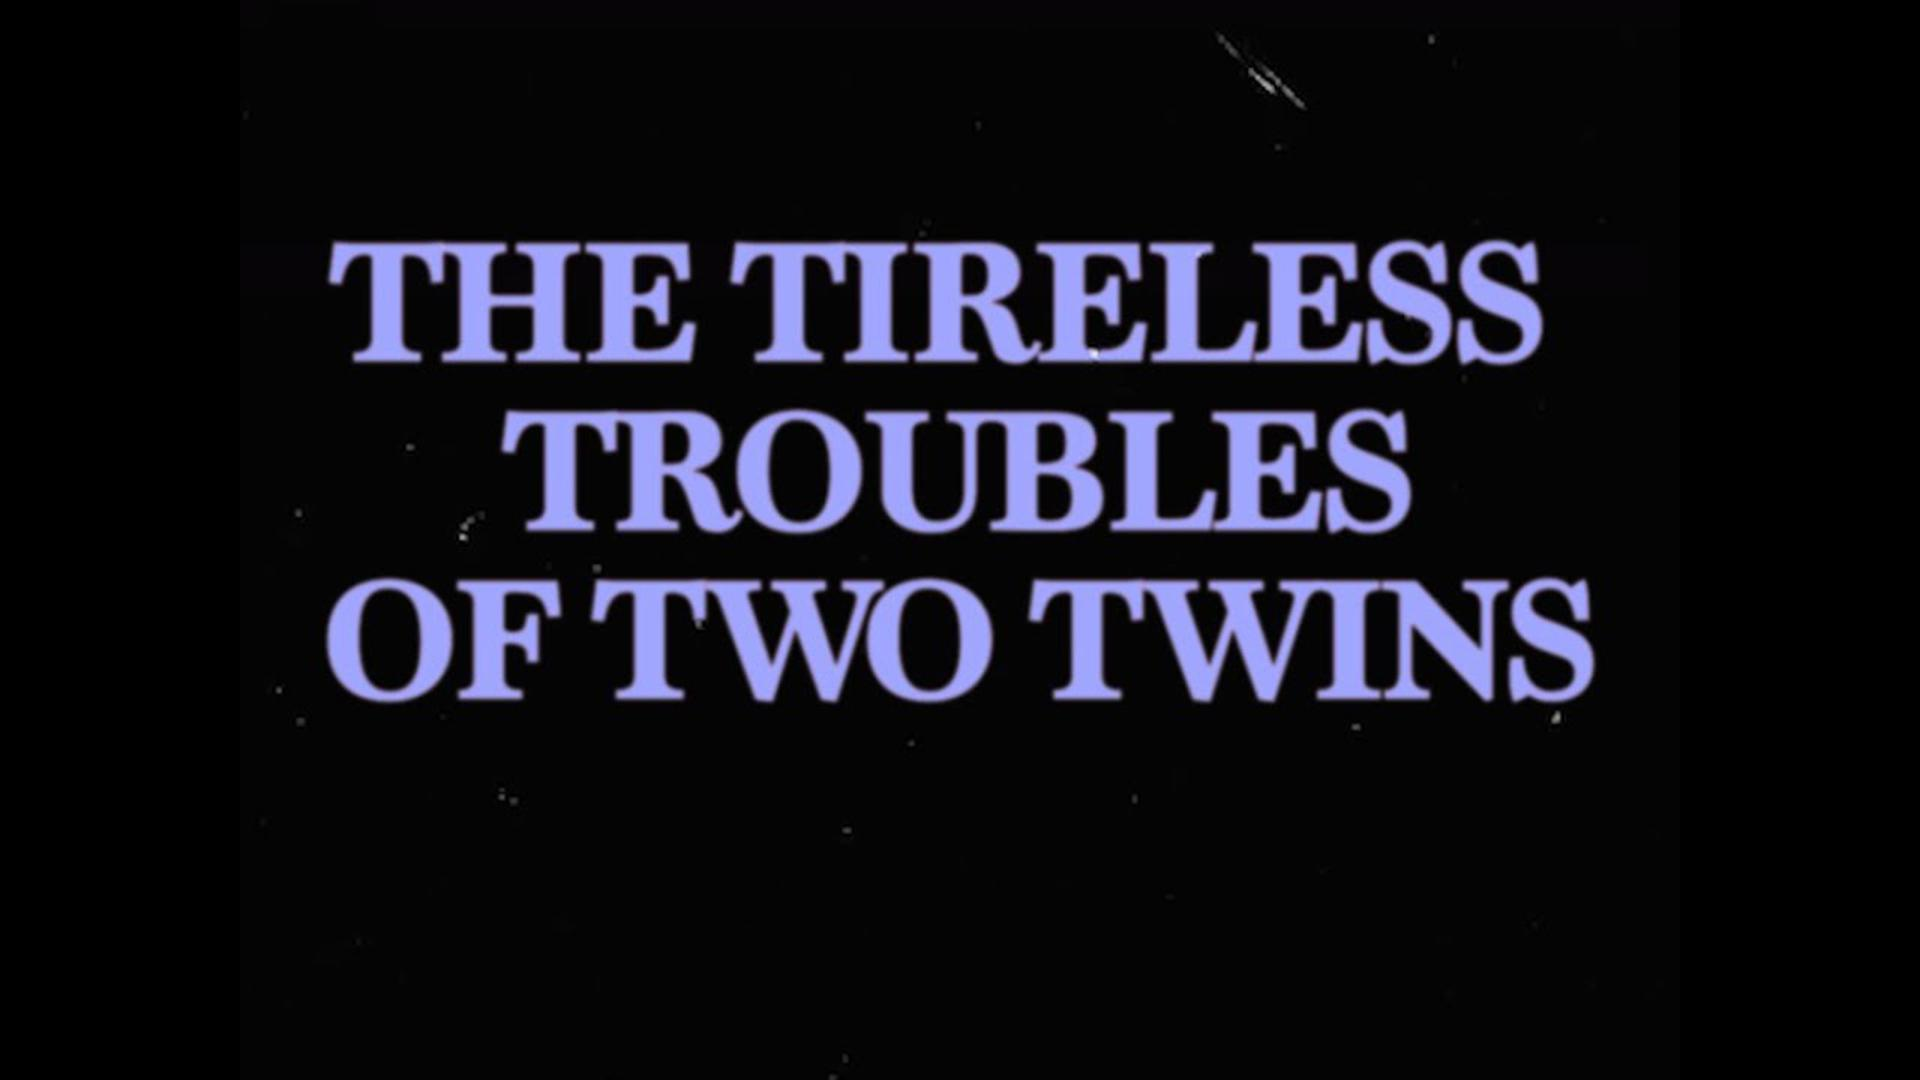 The Tireless Trouble of Two Twins